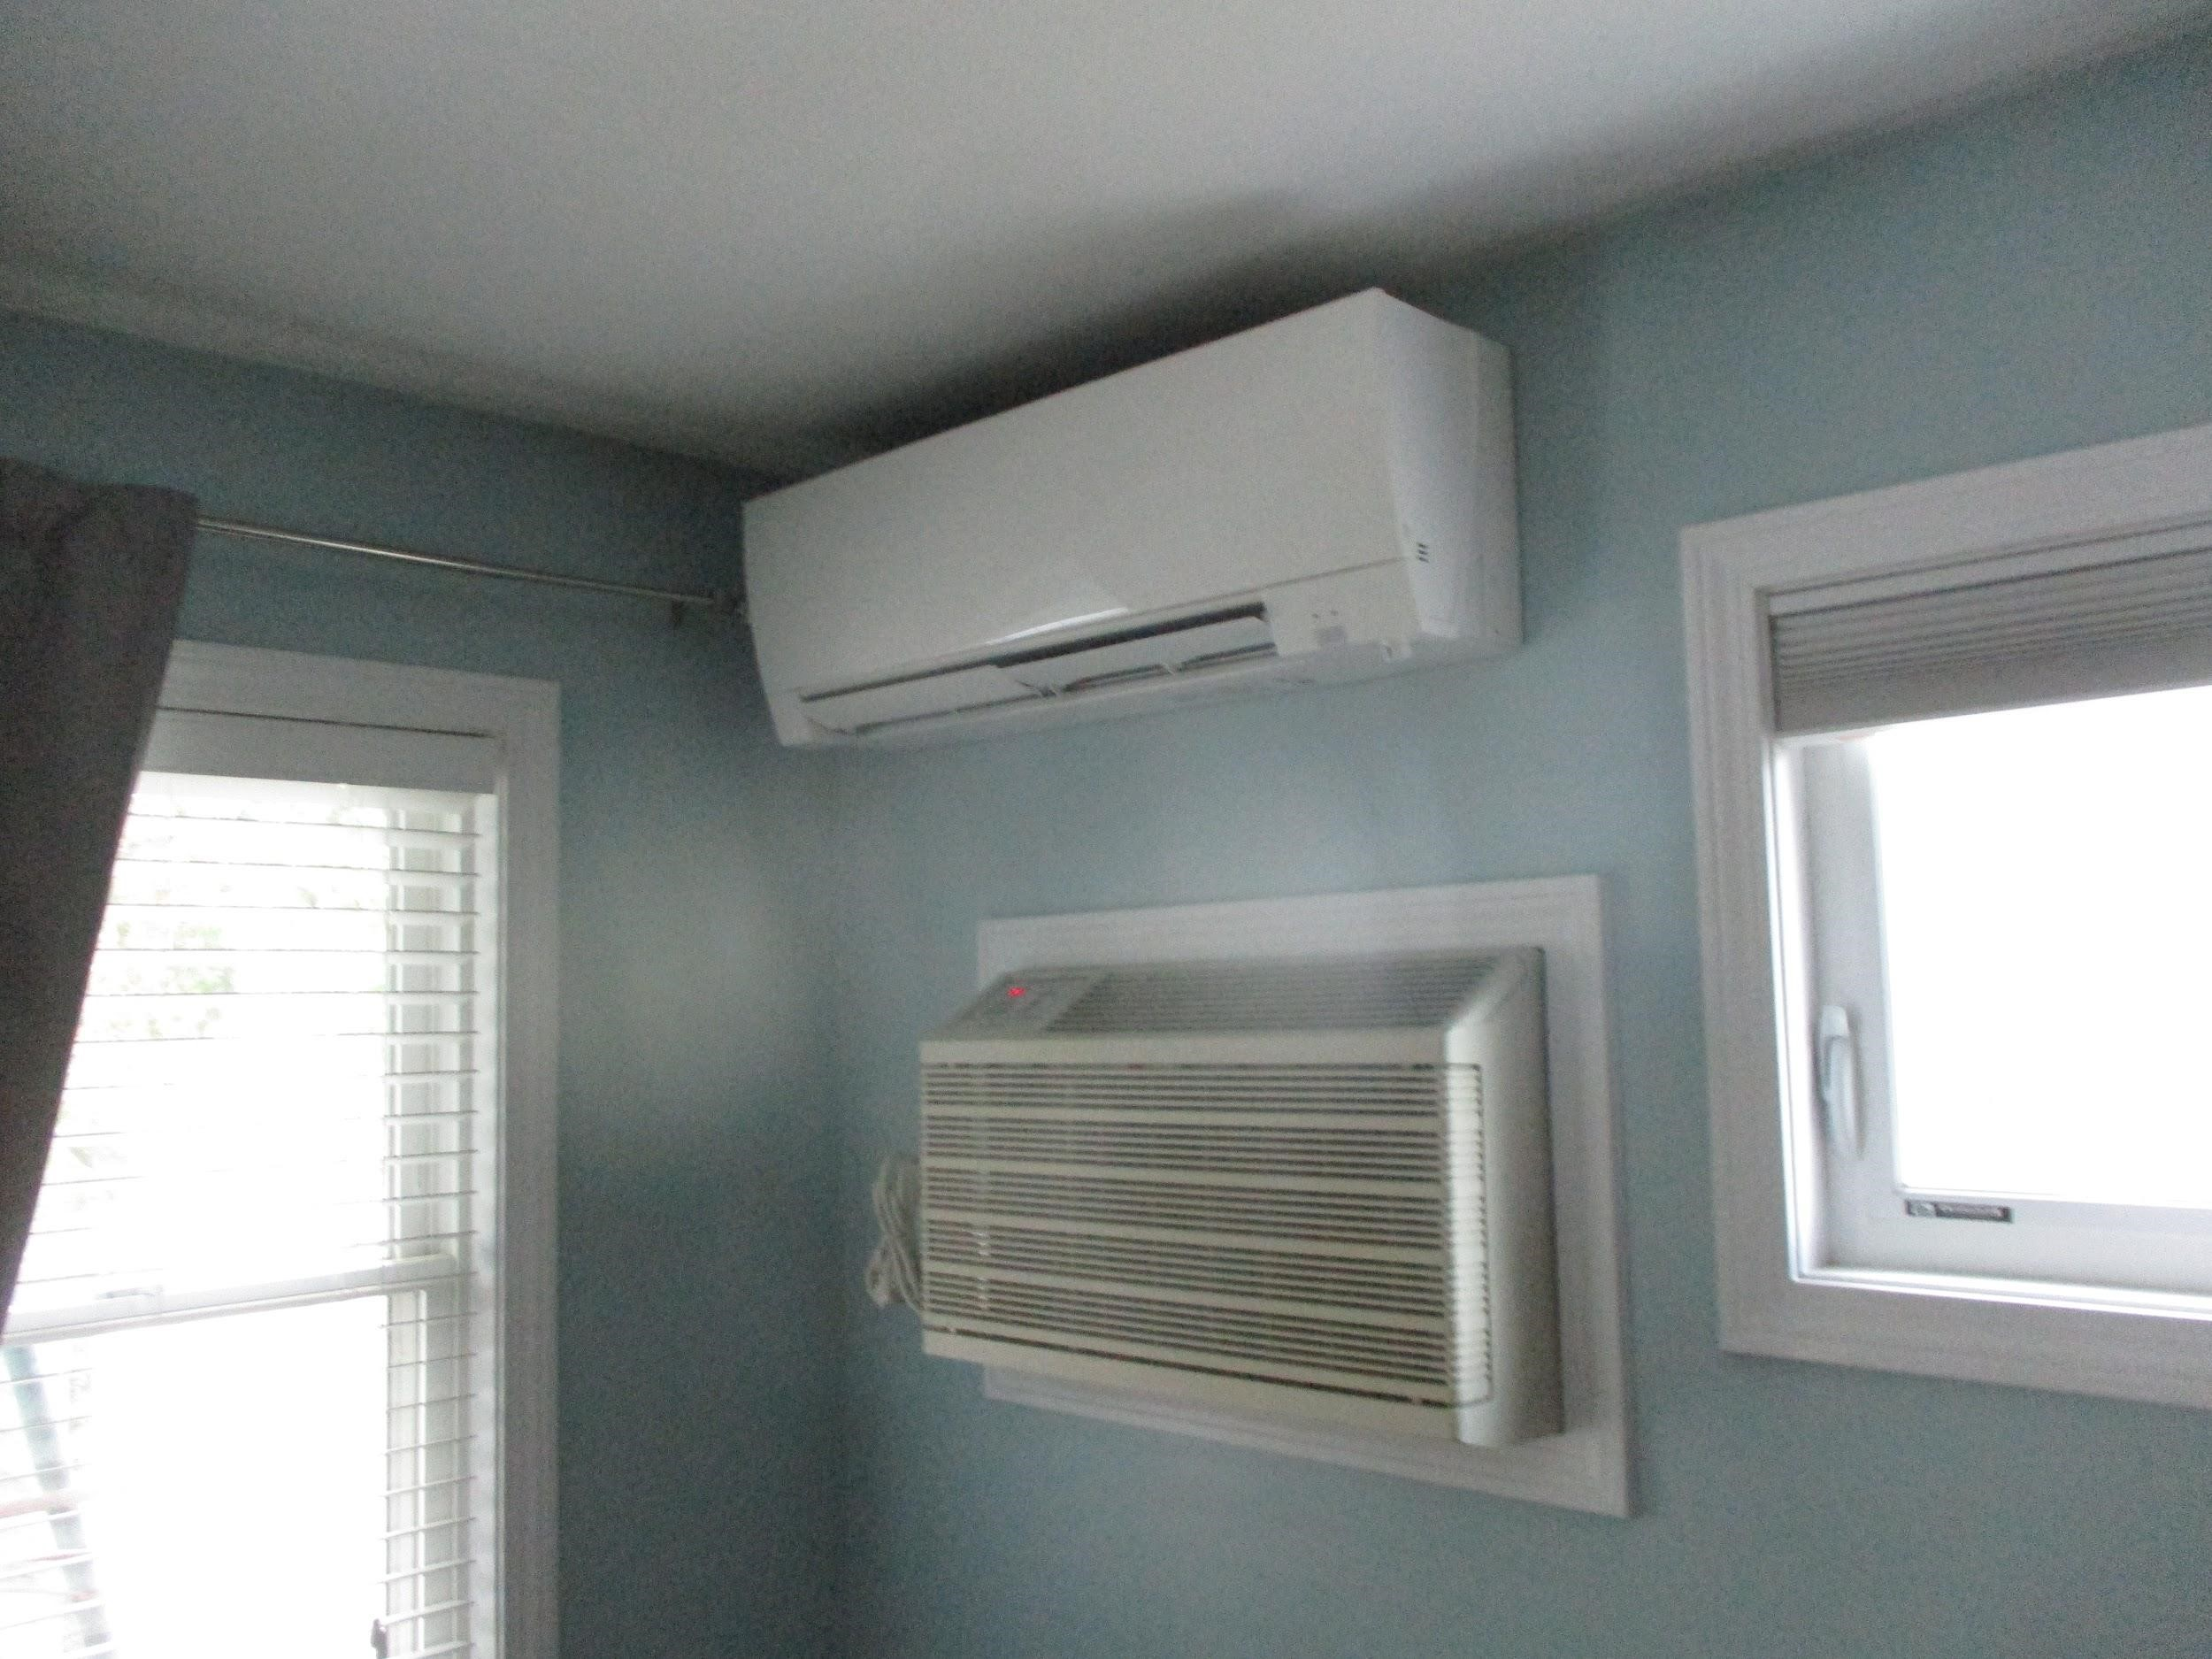 A second Mitsubishi ductless AC unit installed in cape-style home in Framington, MA.